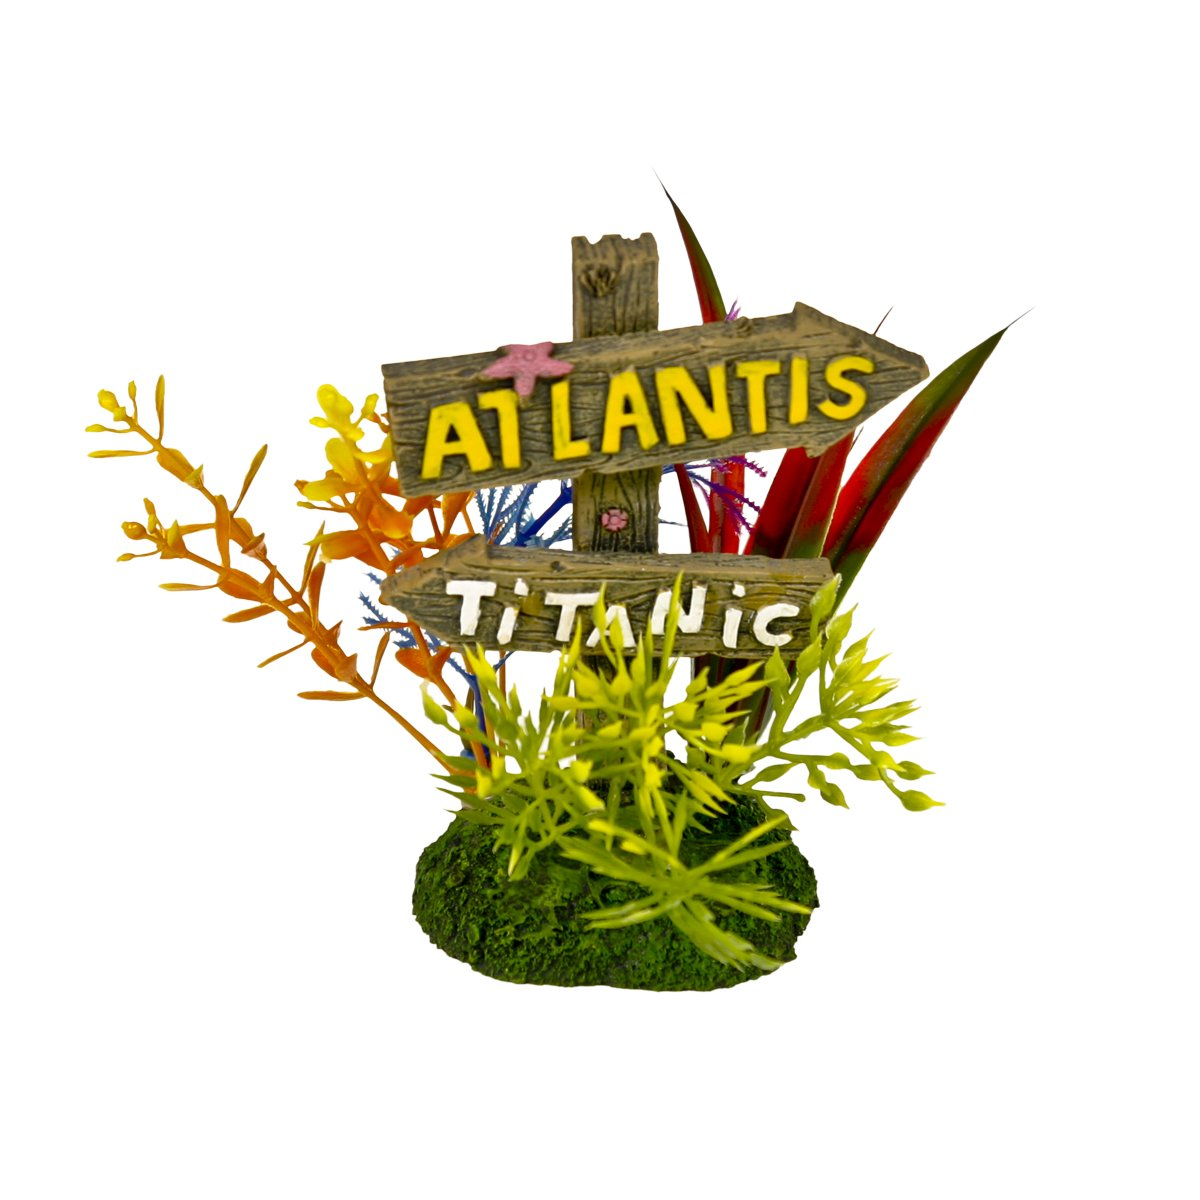 Blue Ribbon Pet Products 006083 Exotic Environments Atlantis And Titanic Sign Dealfisher EE-1140